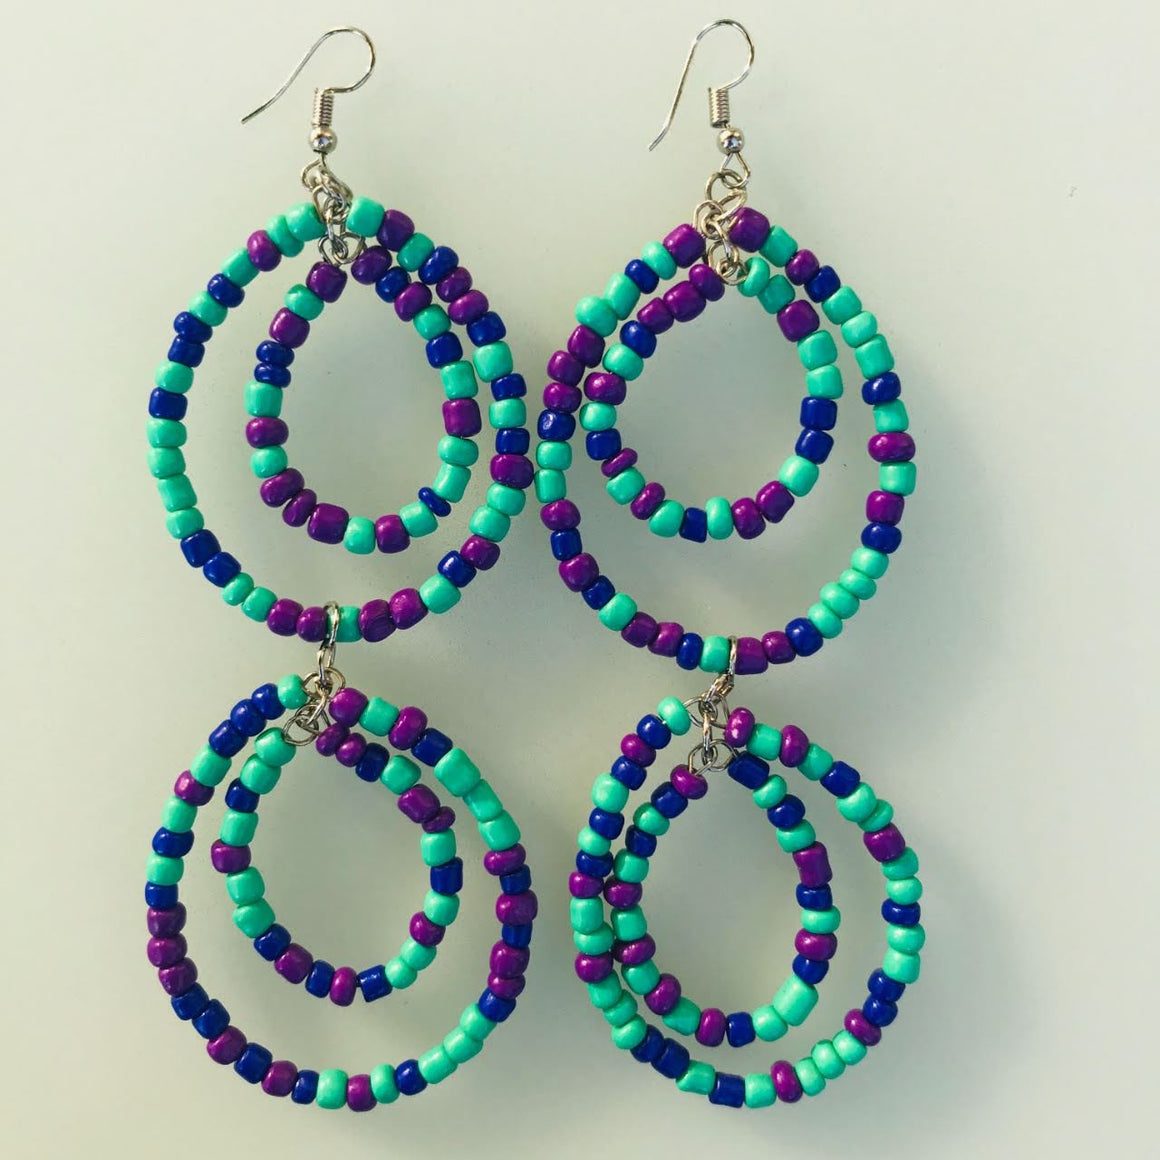 Lindeka Earrings